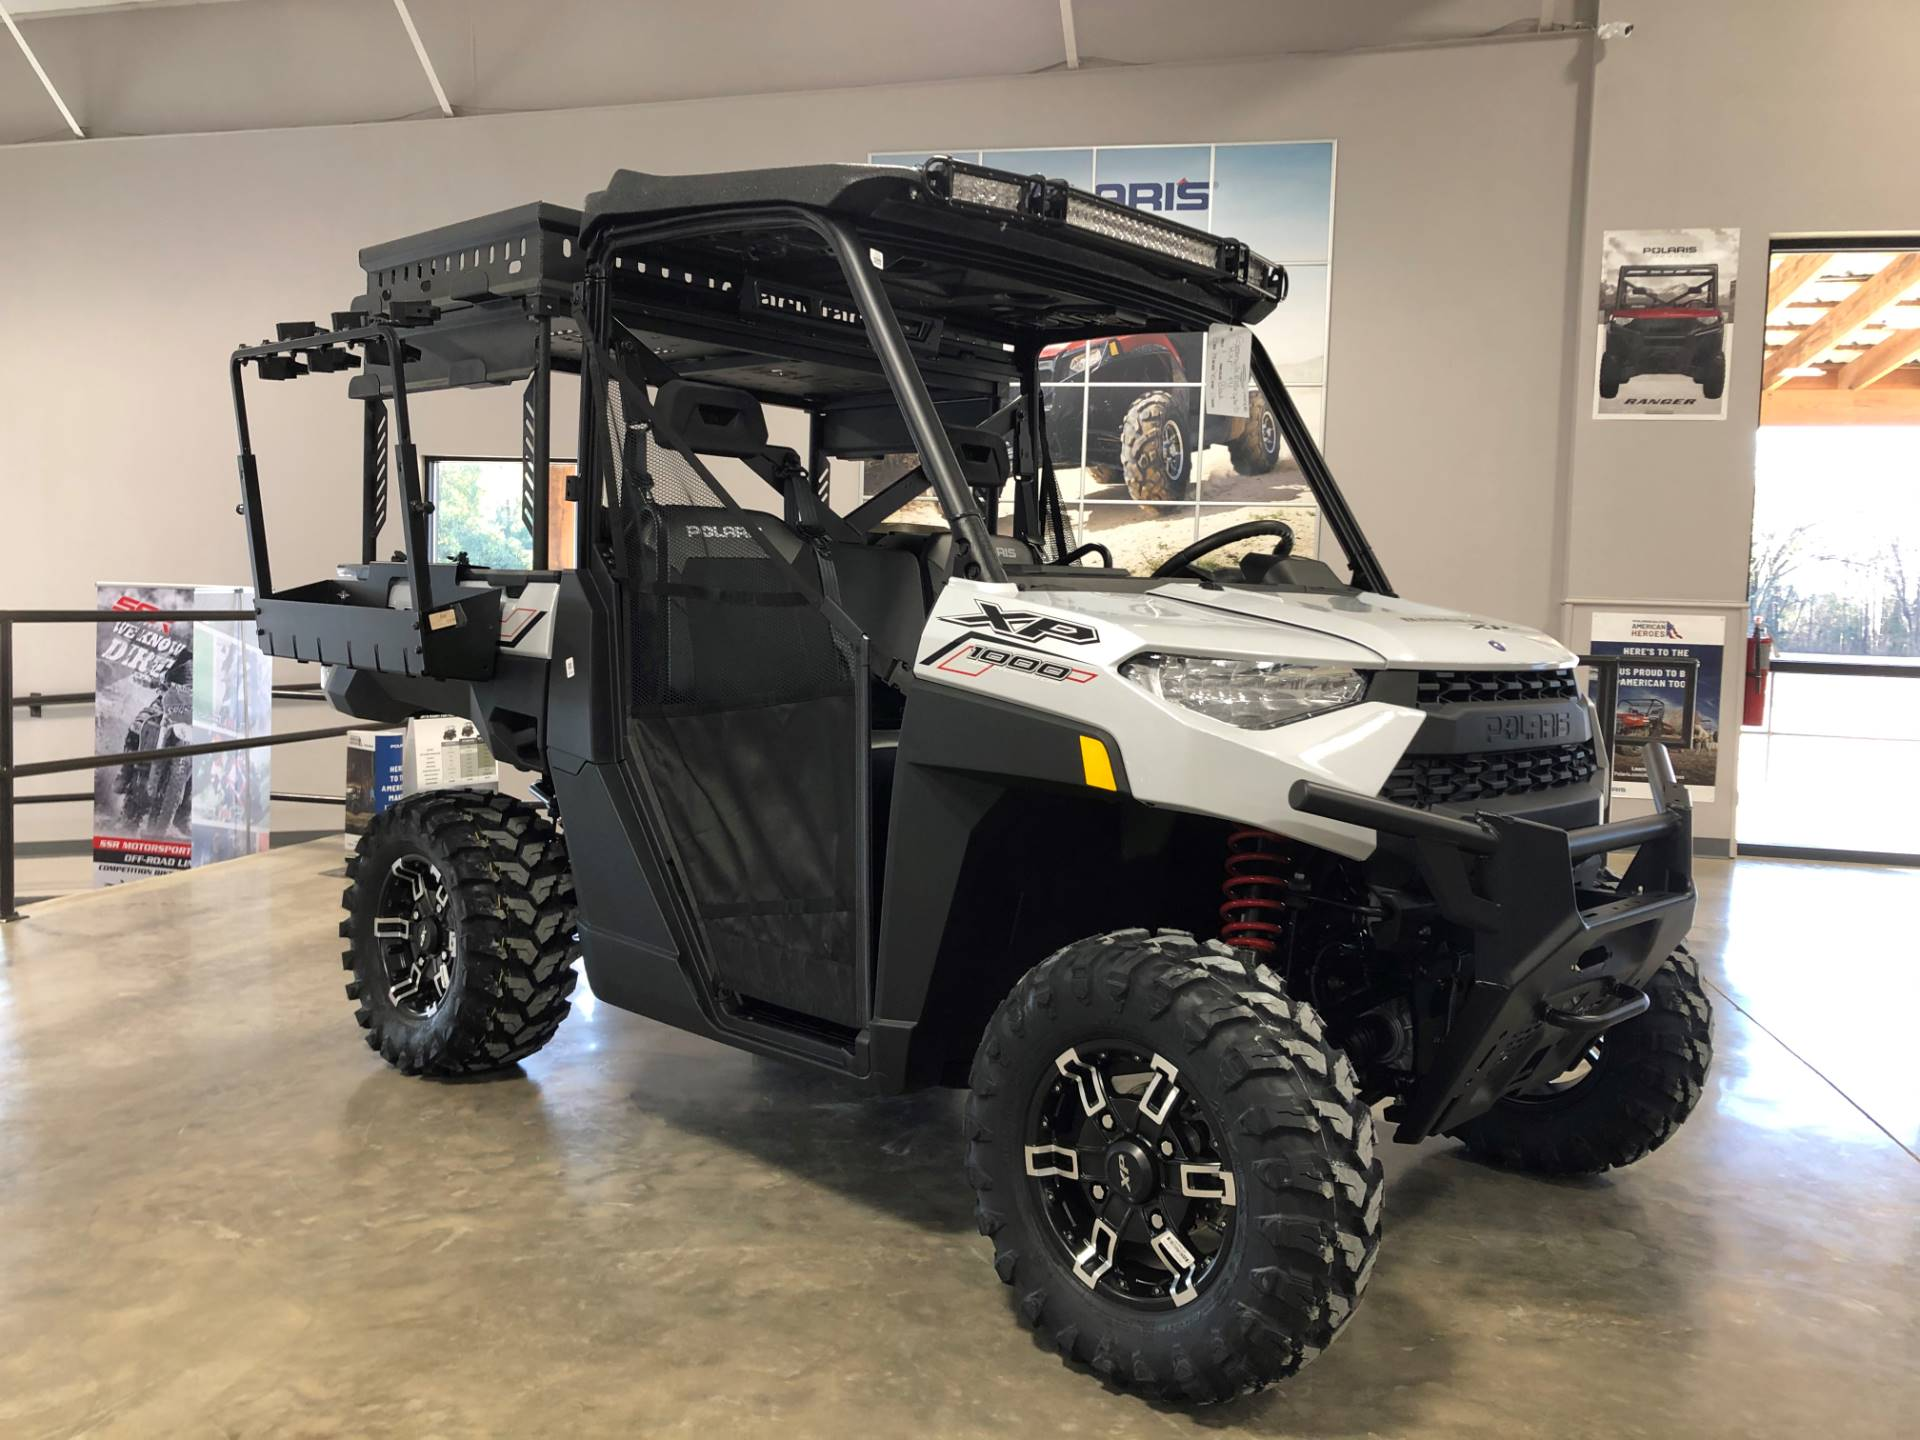 2021 Polaris Ranger XP 1000 Premium in Leland, Mississippi - Photo 1